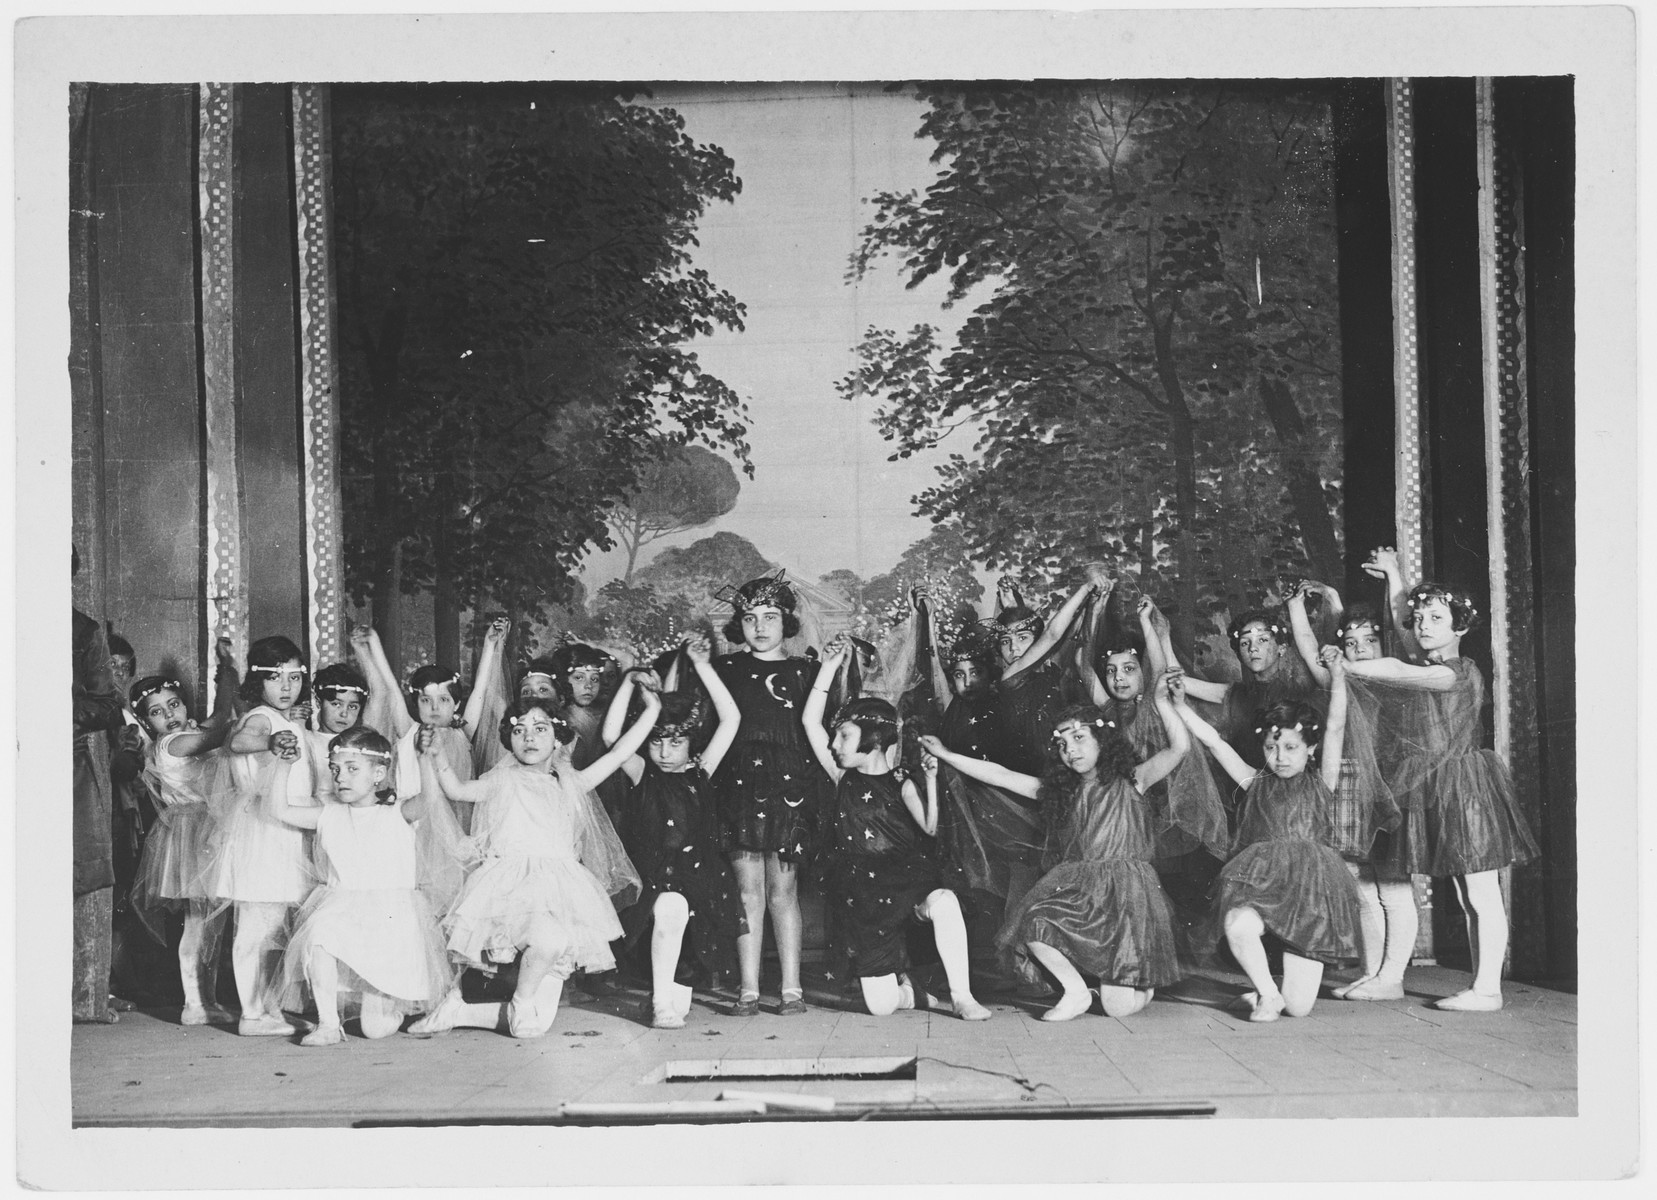 Dance recital at the school where Lina Zarfatti taught.